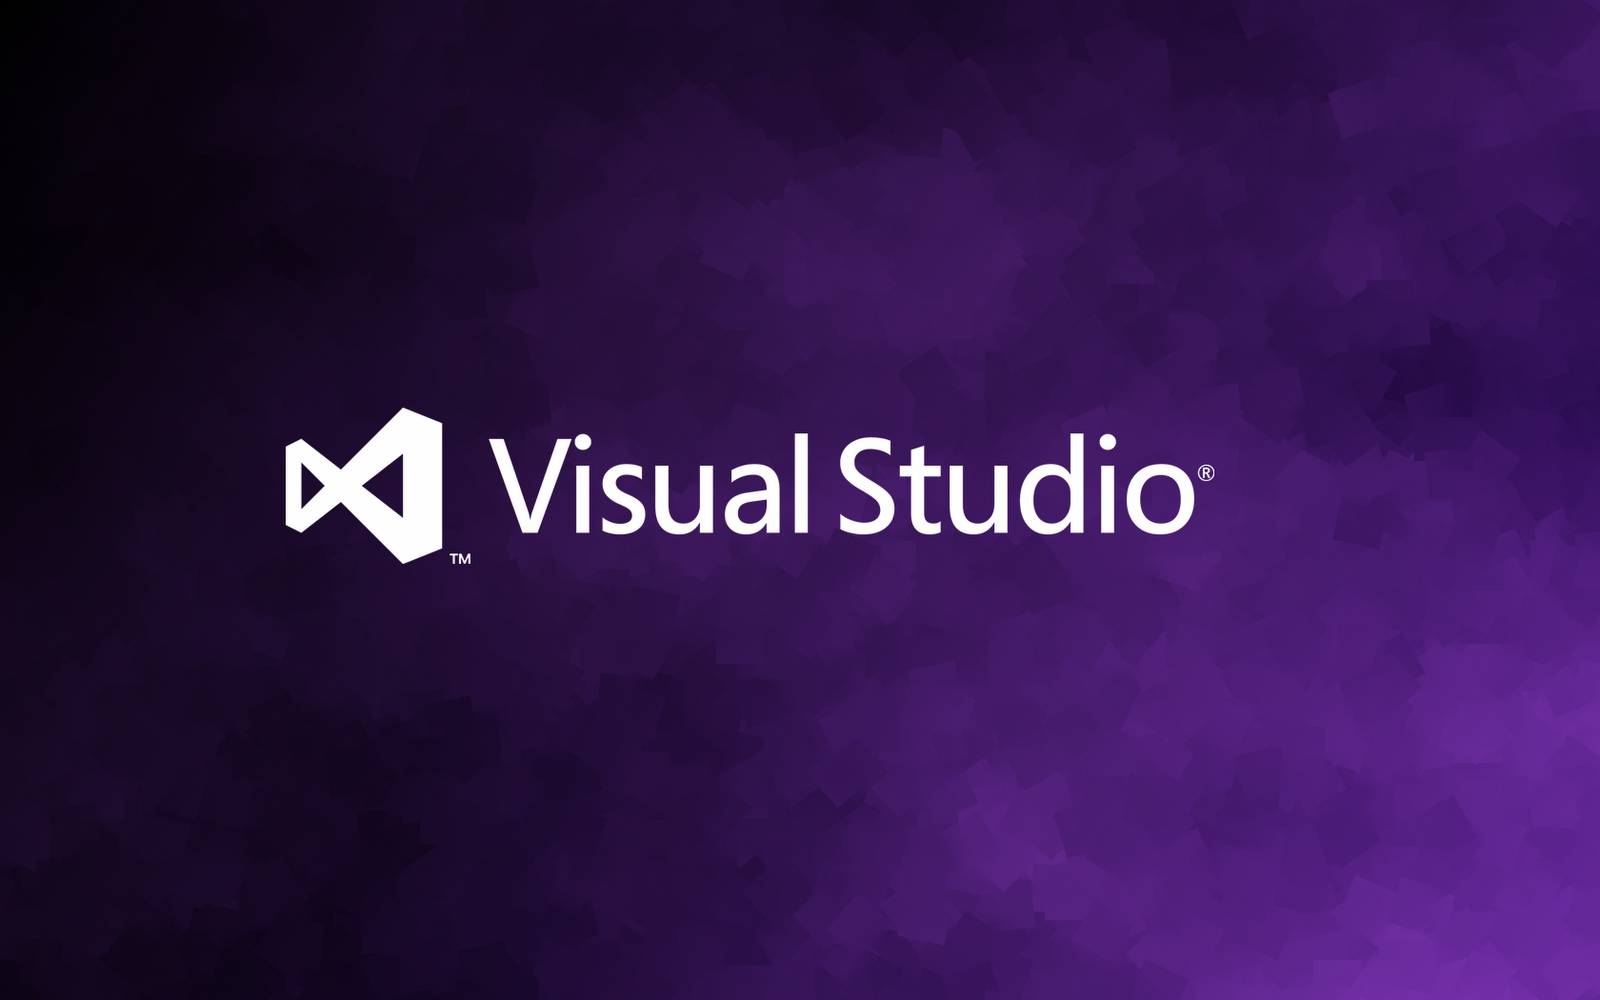 Visual Studio Wallpapers Wallpapersafari